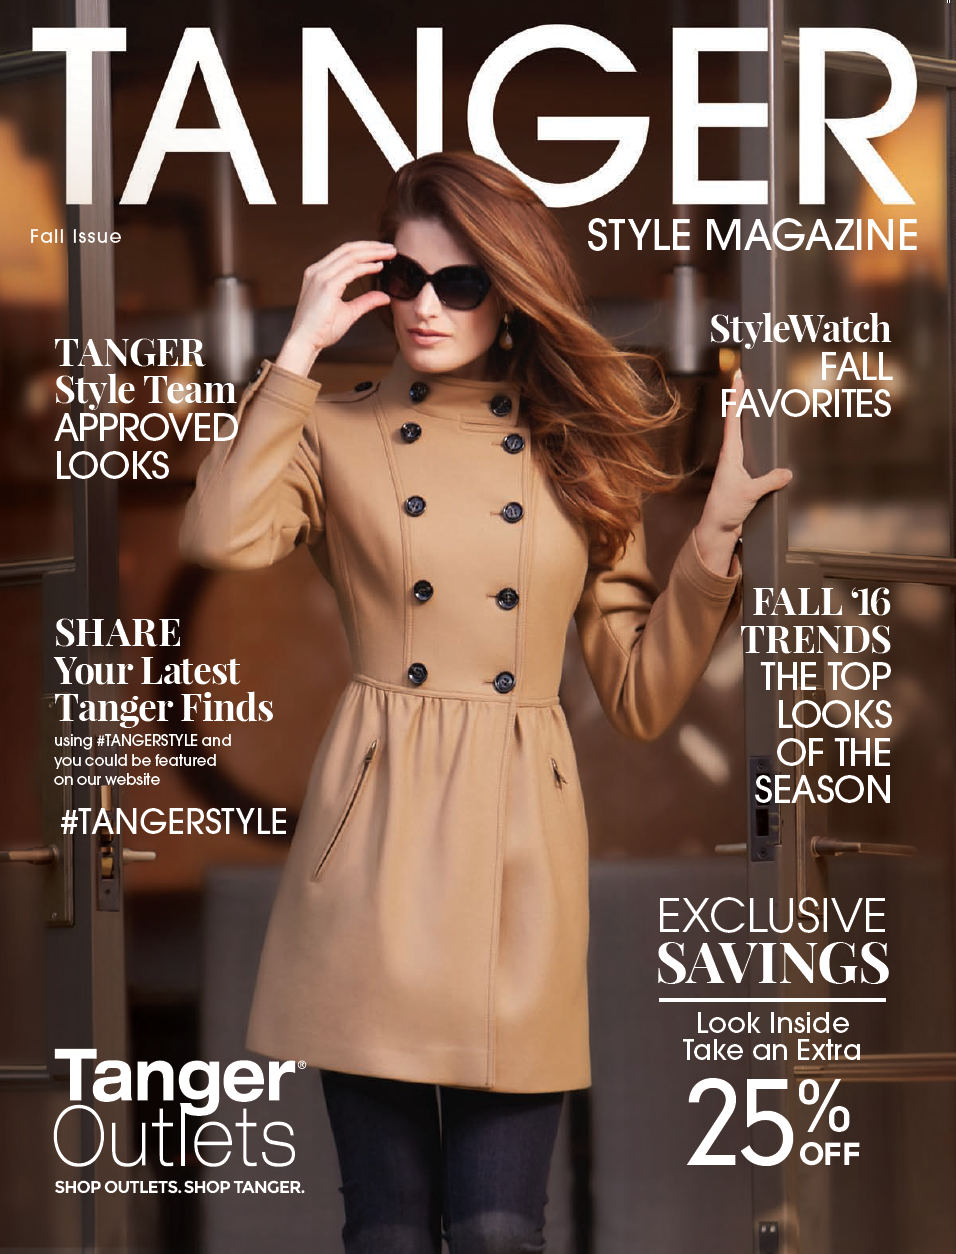 TangerStyle Fall Magazine Cover